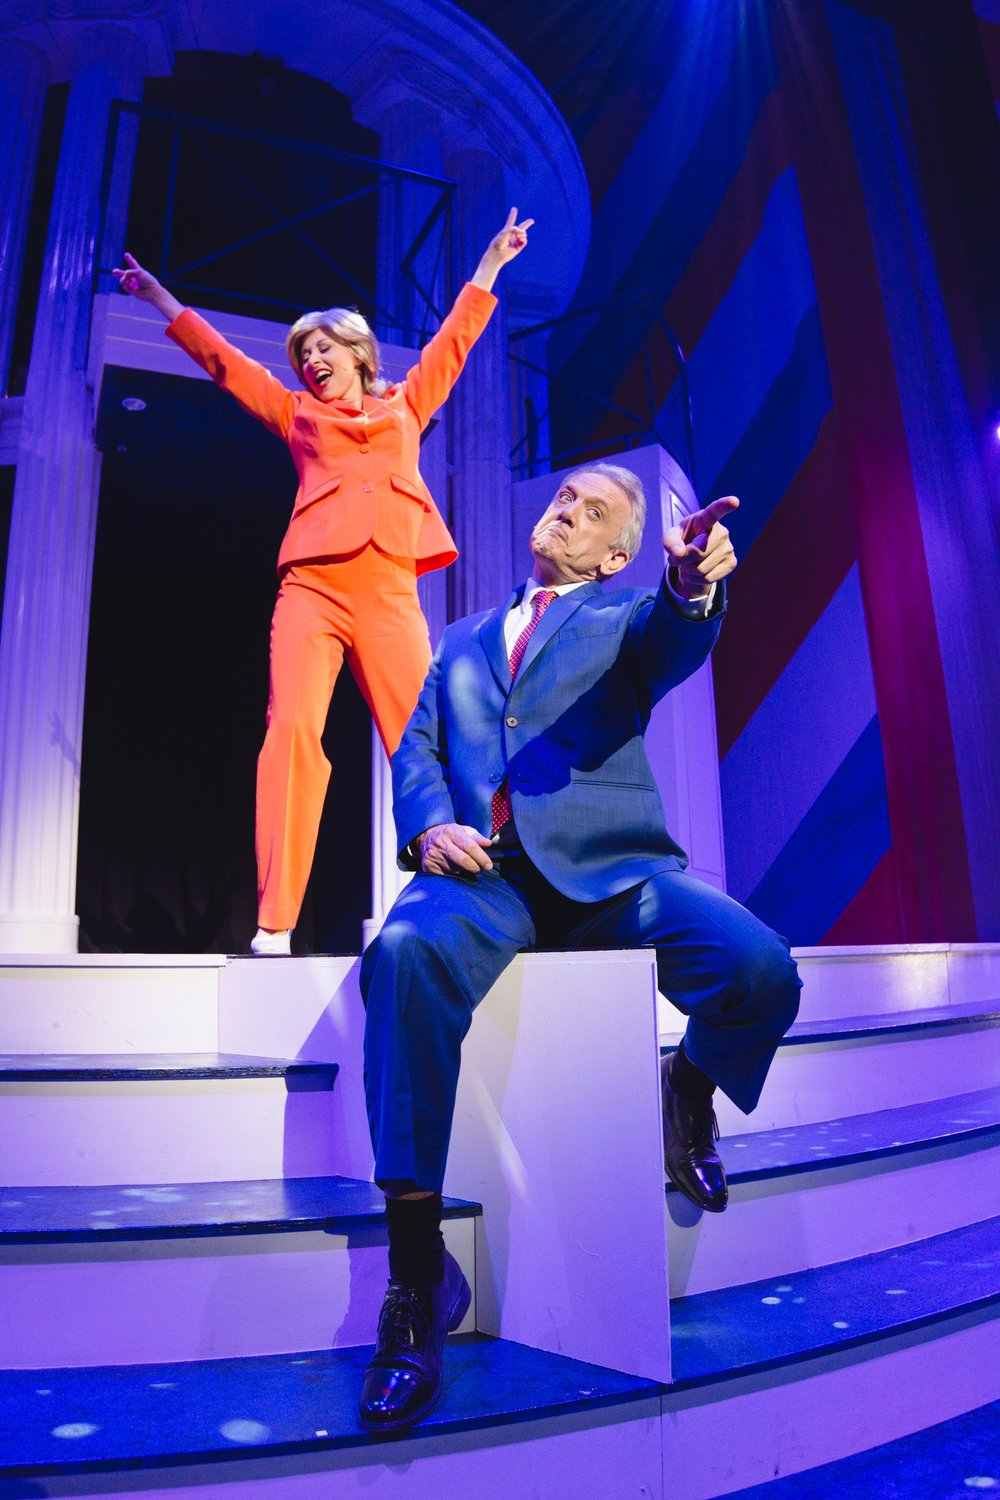 64 Lisa Adam and Simon Burke. Clinton The Musical. image by Daniel James Grant..jpg